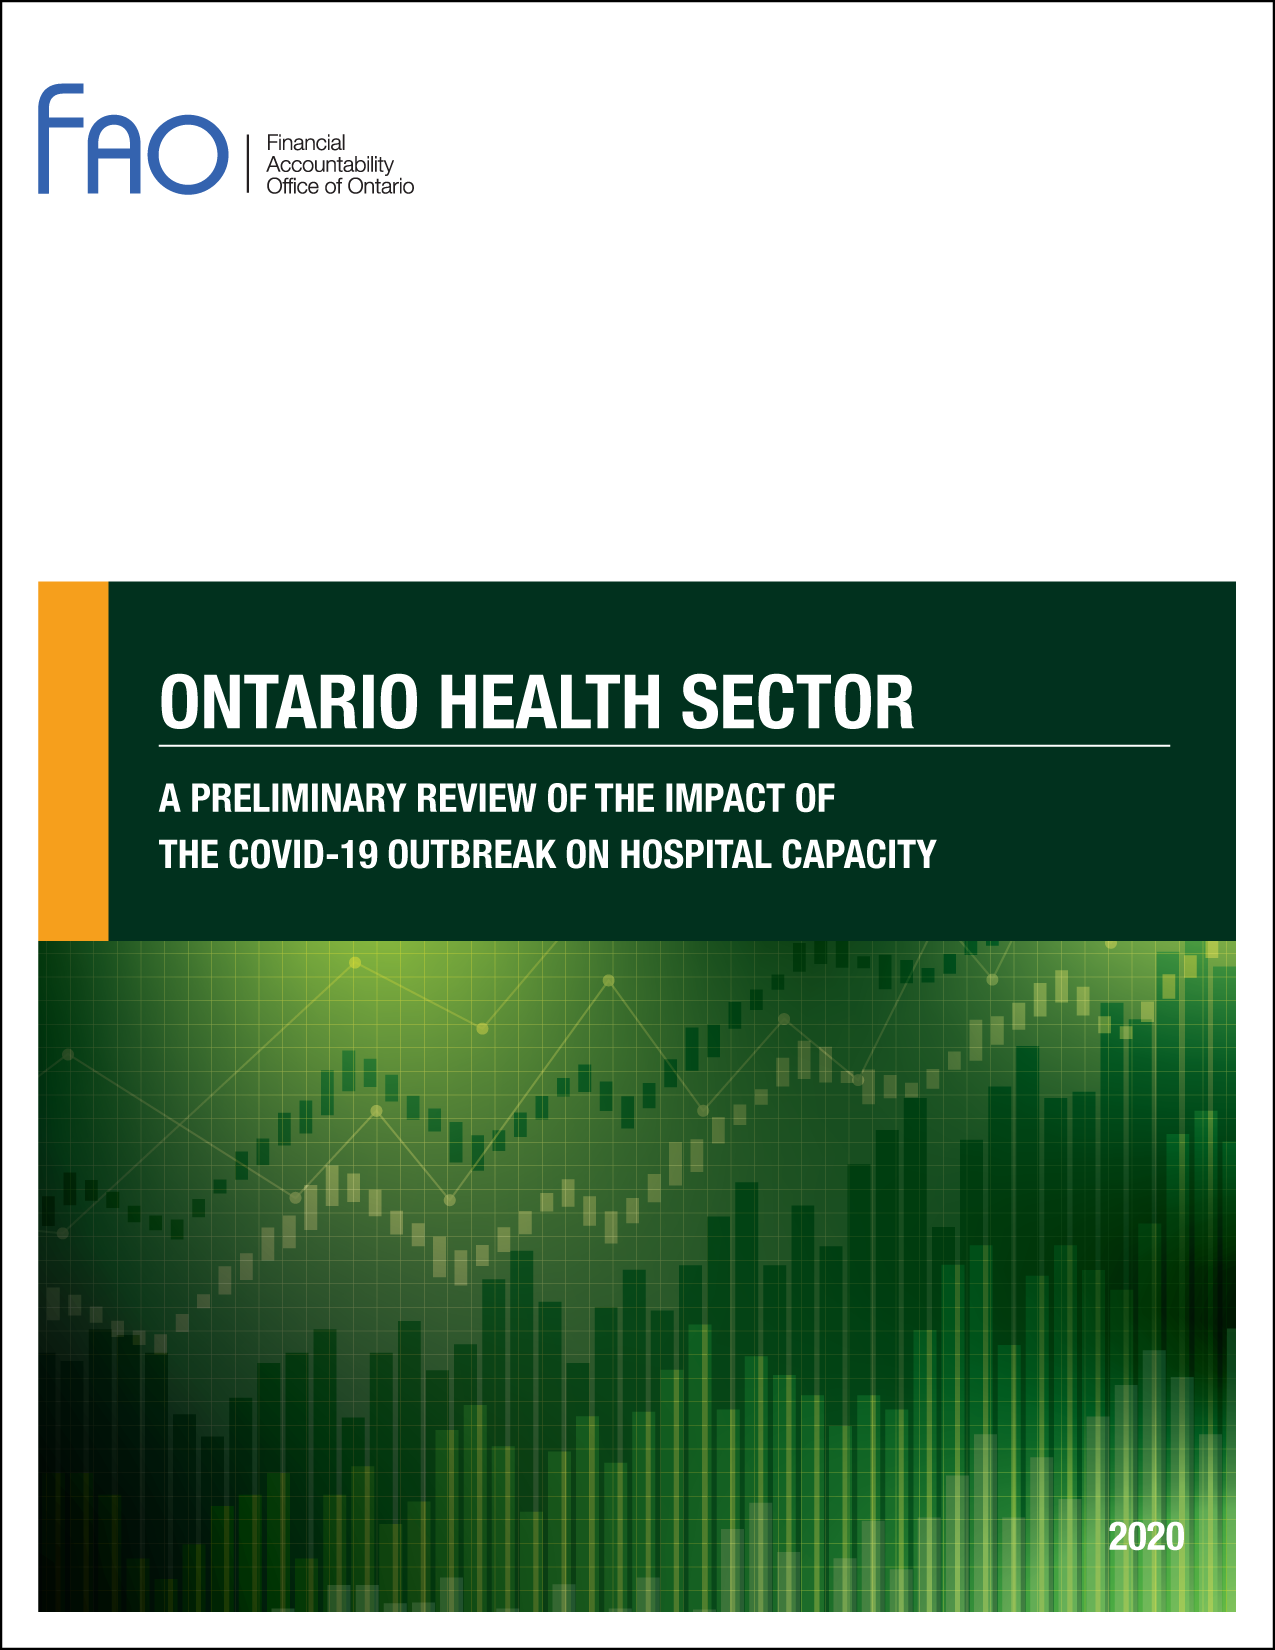 Ontario Health Sector: A Preliminary Review of the Impact of the COVID-19 Outbreak on Hospital Capacity